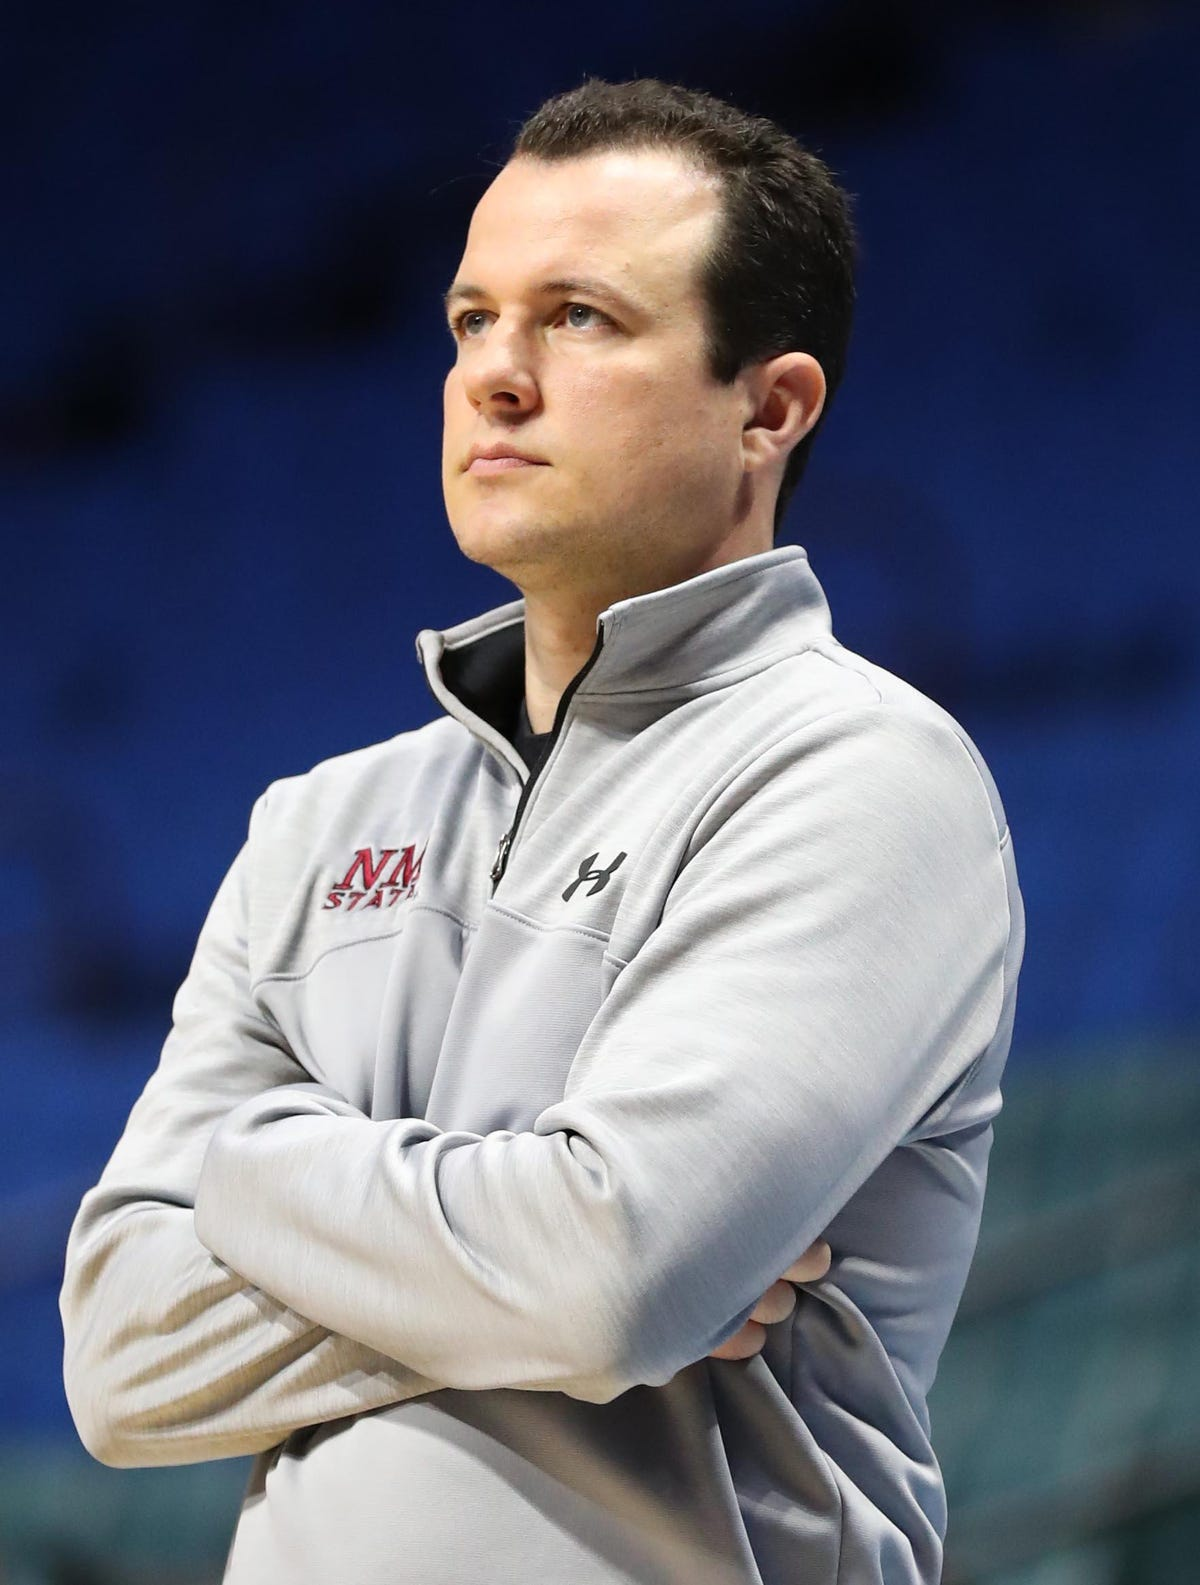 COMMENTARY: Paul Weir was far more than a one-year wonder at New